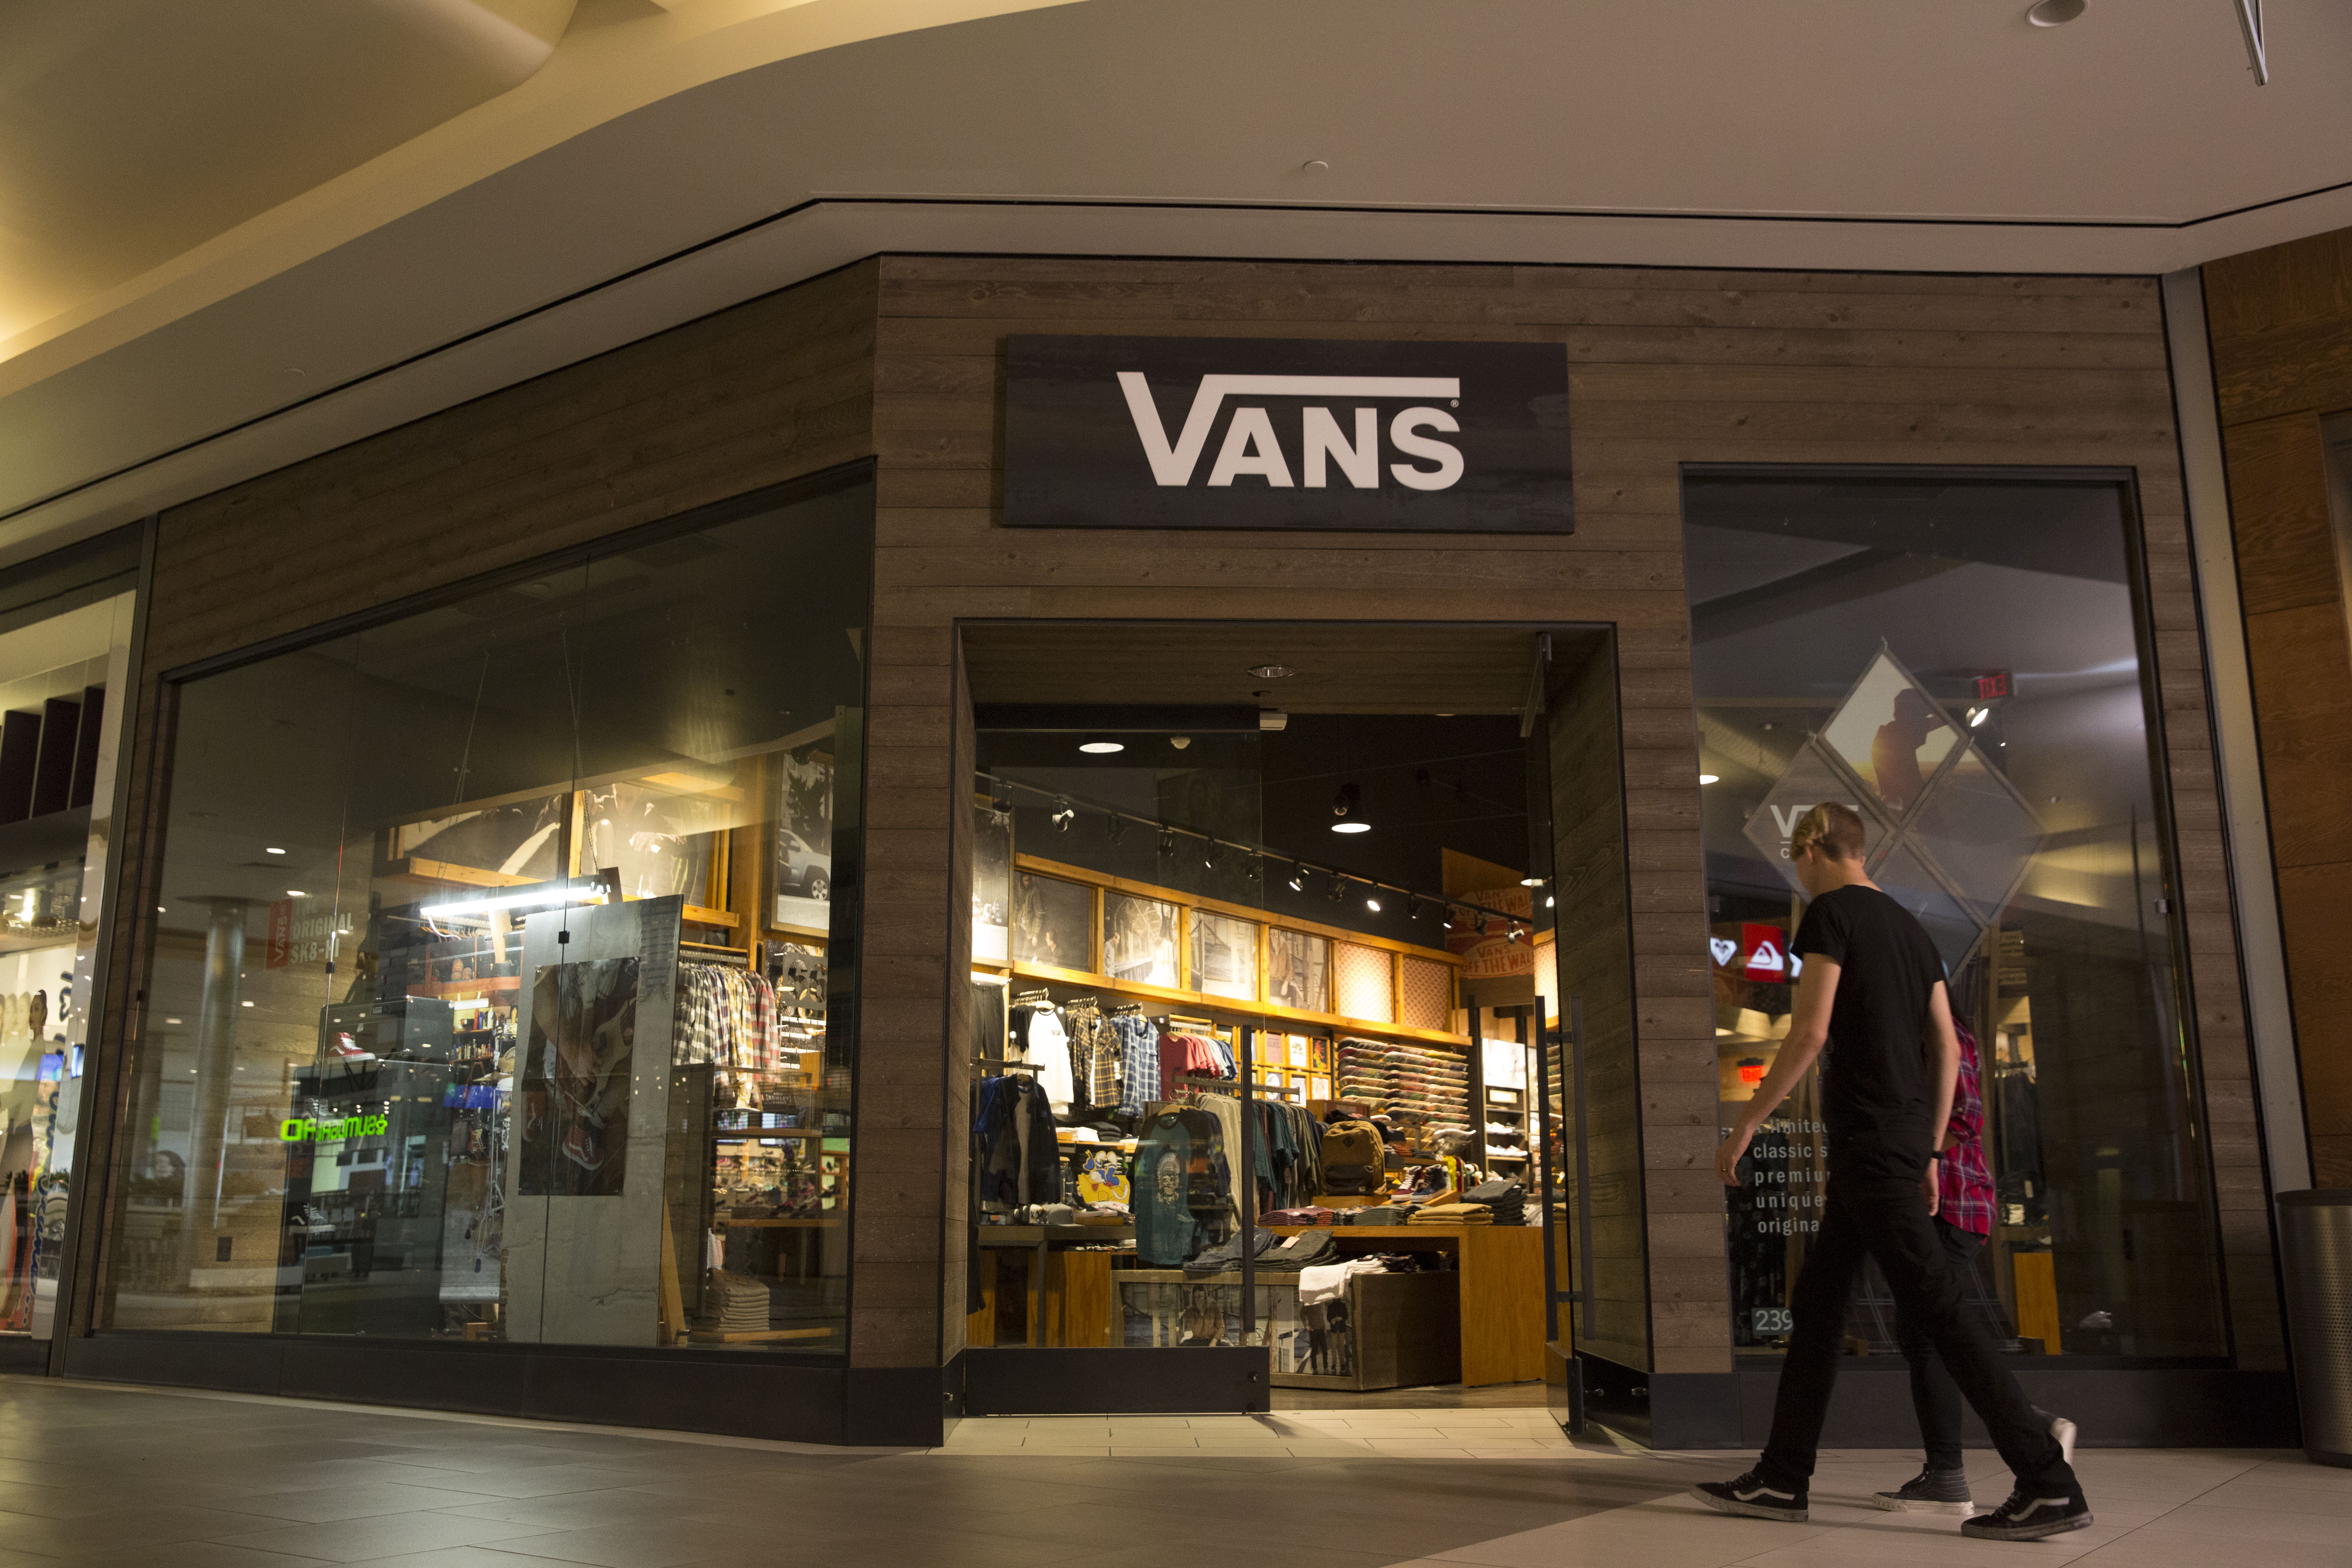 Vans Challenge: Here's why people are tossing sneakers in